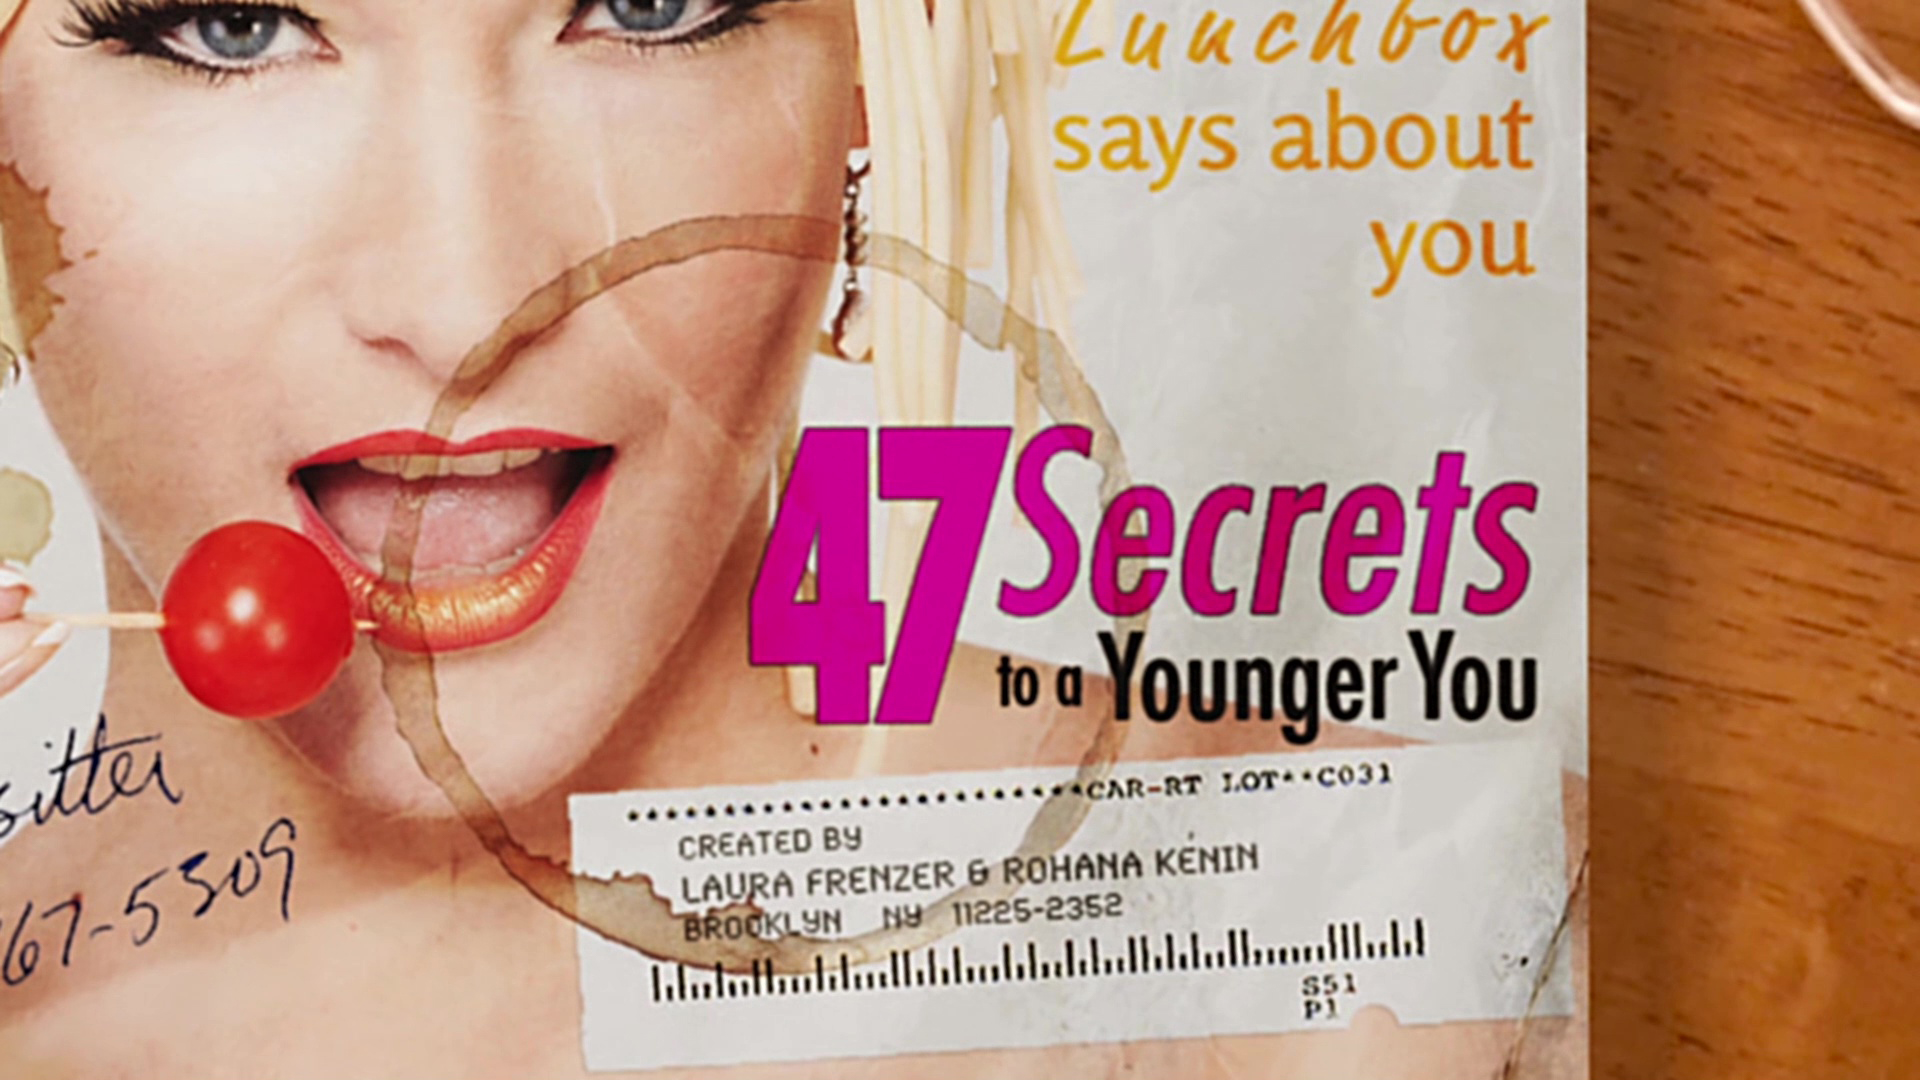 47 Secrets to a Younger You